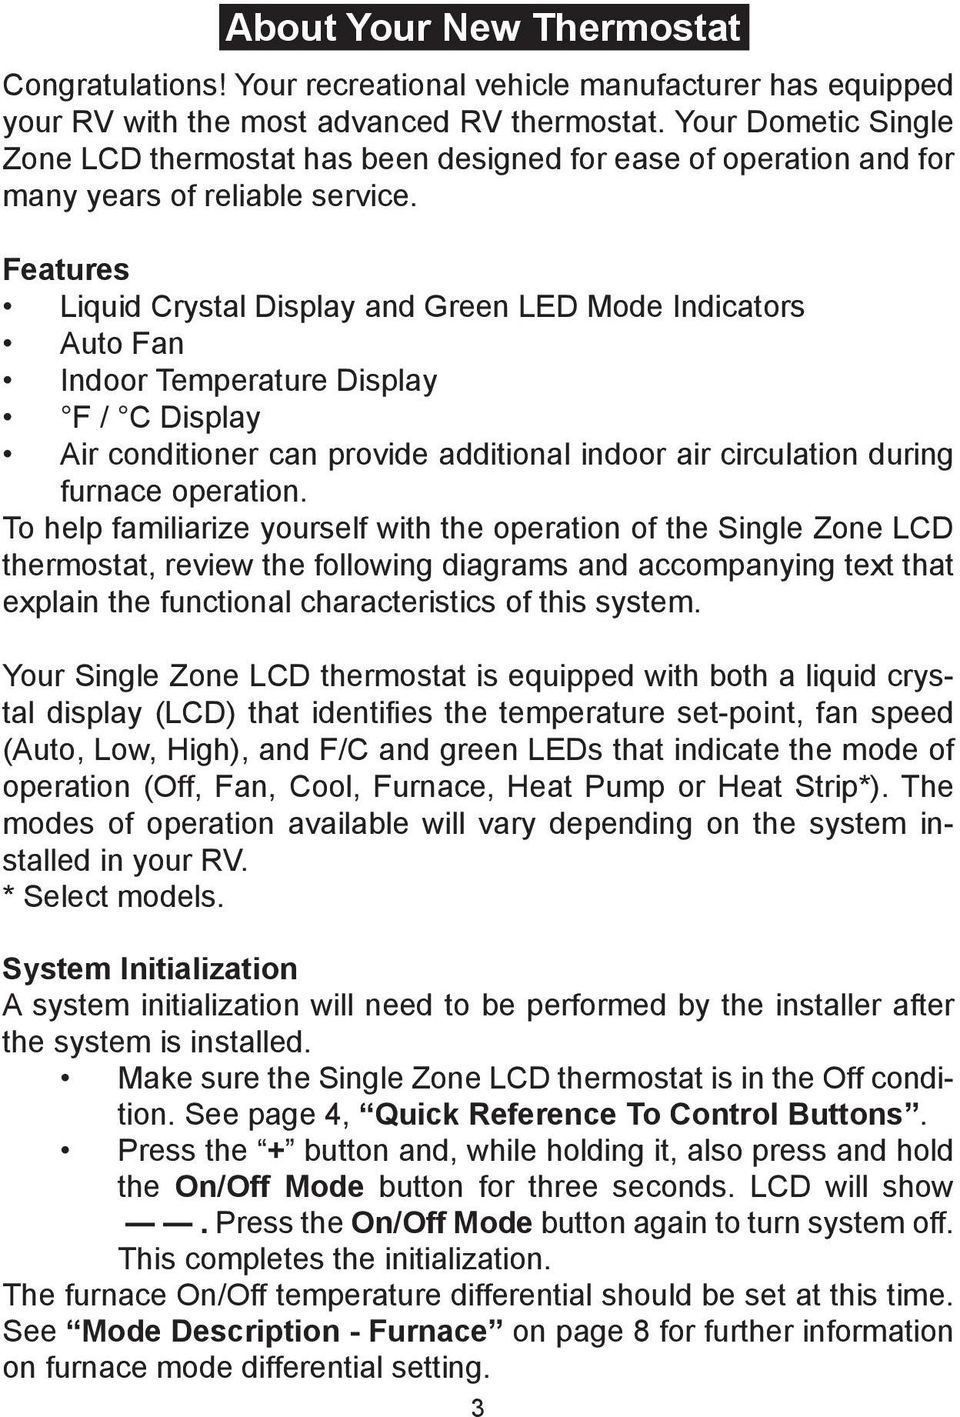 Single Zone Lcd Thermostat Operating Instructions Pdf Dometic Wiring Diagram Features Liquid Crystal Display And Green Led Indicators Auto Fan Indoor Temperature F C 4 Your